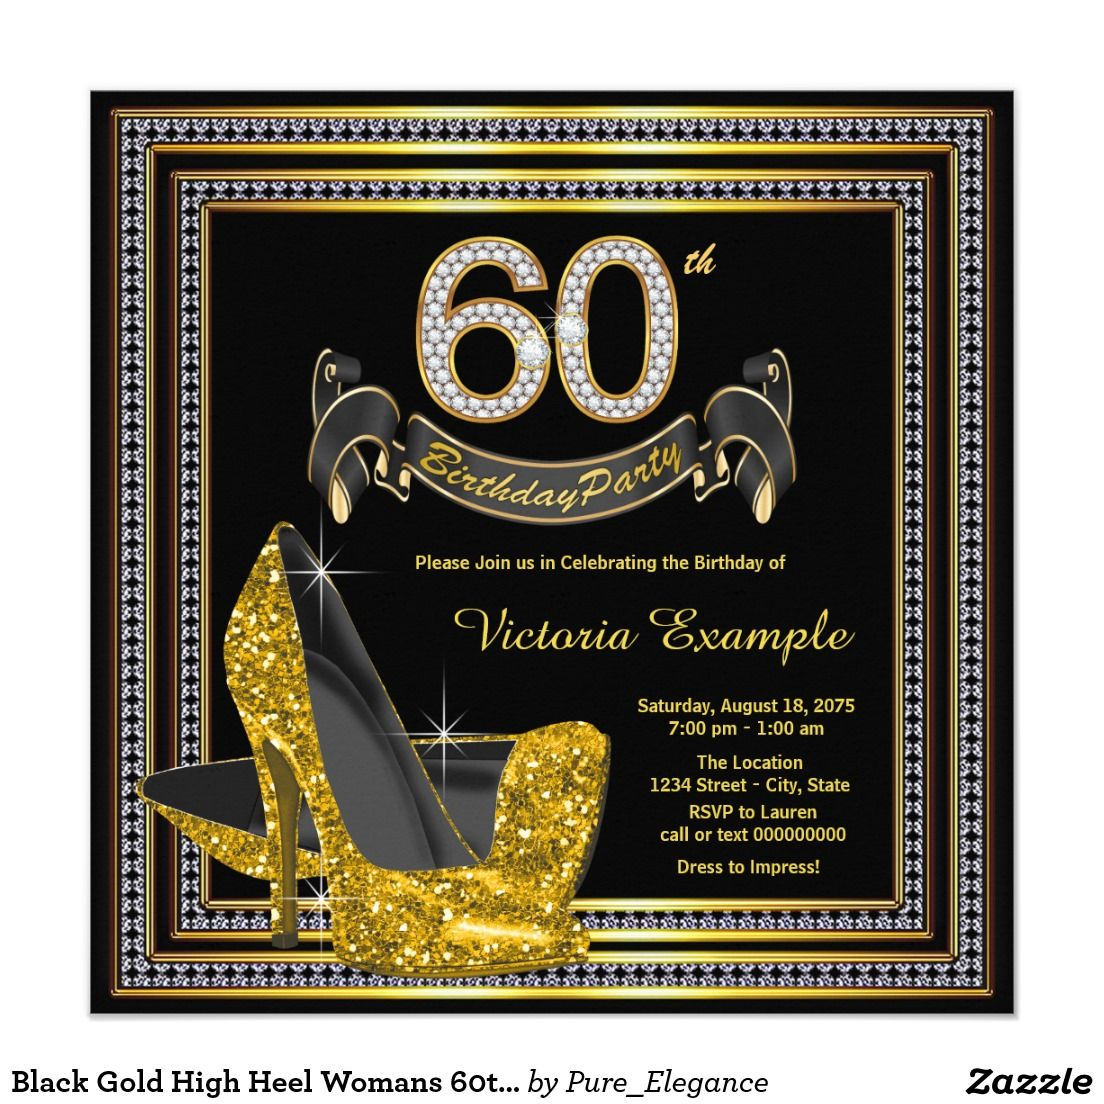 Black Gold High Heel Womans 60th Birthday Party Card | Party ...